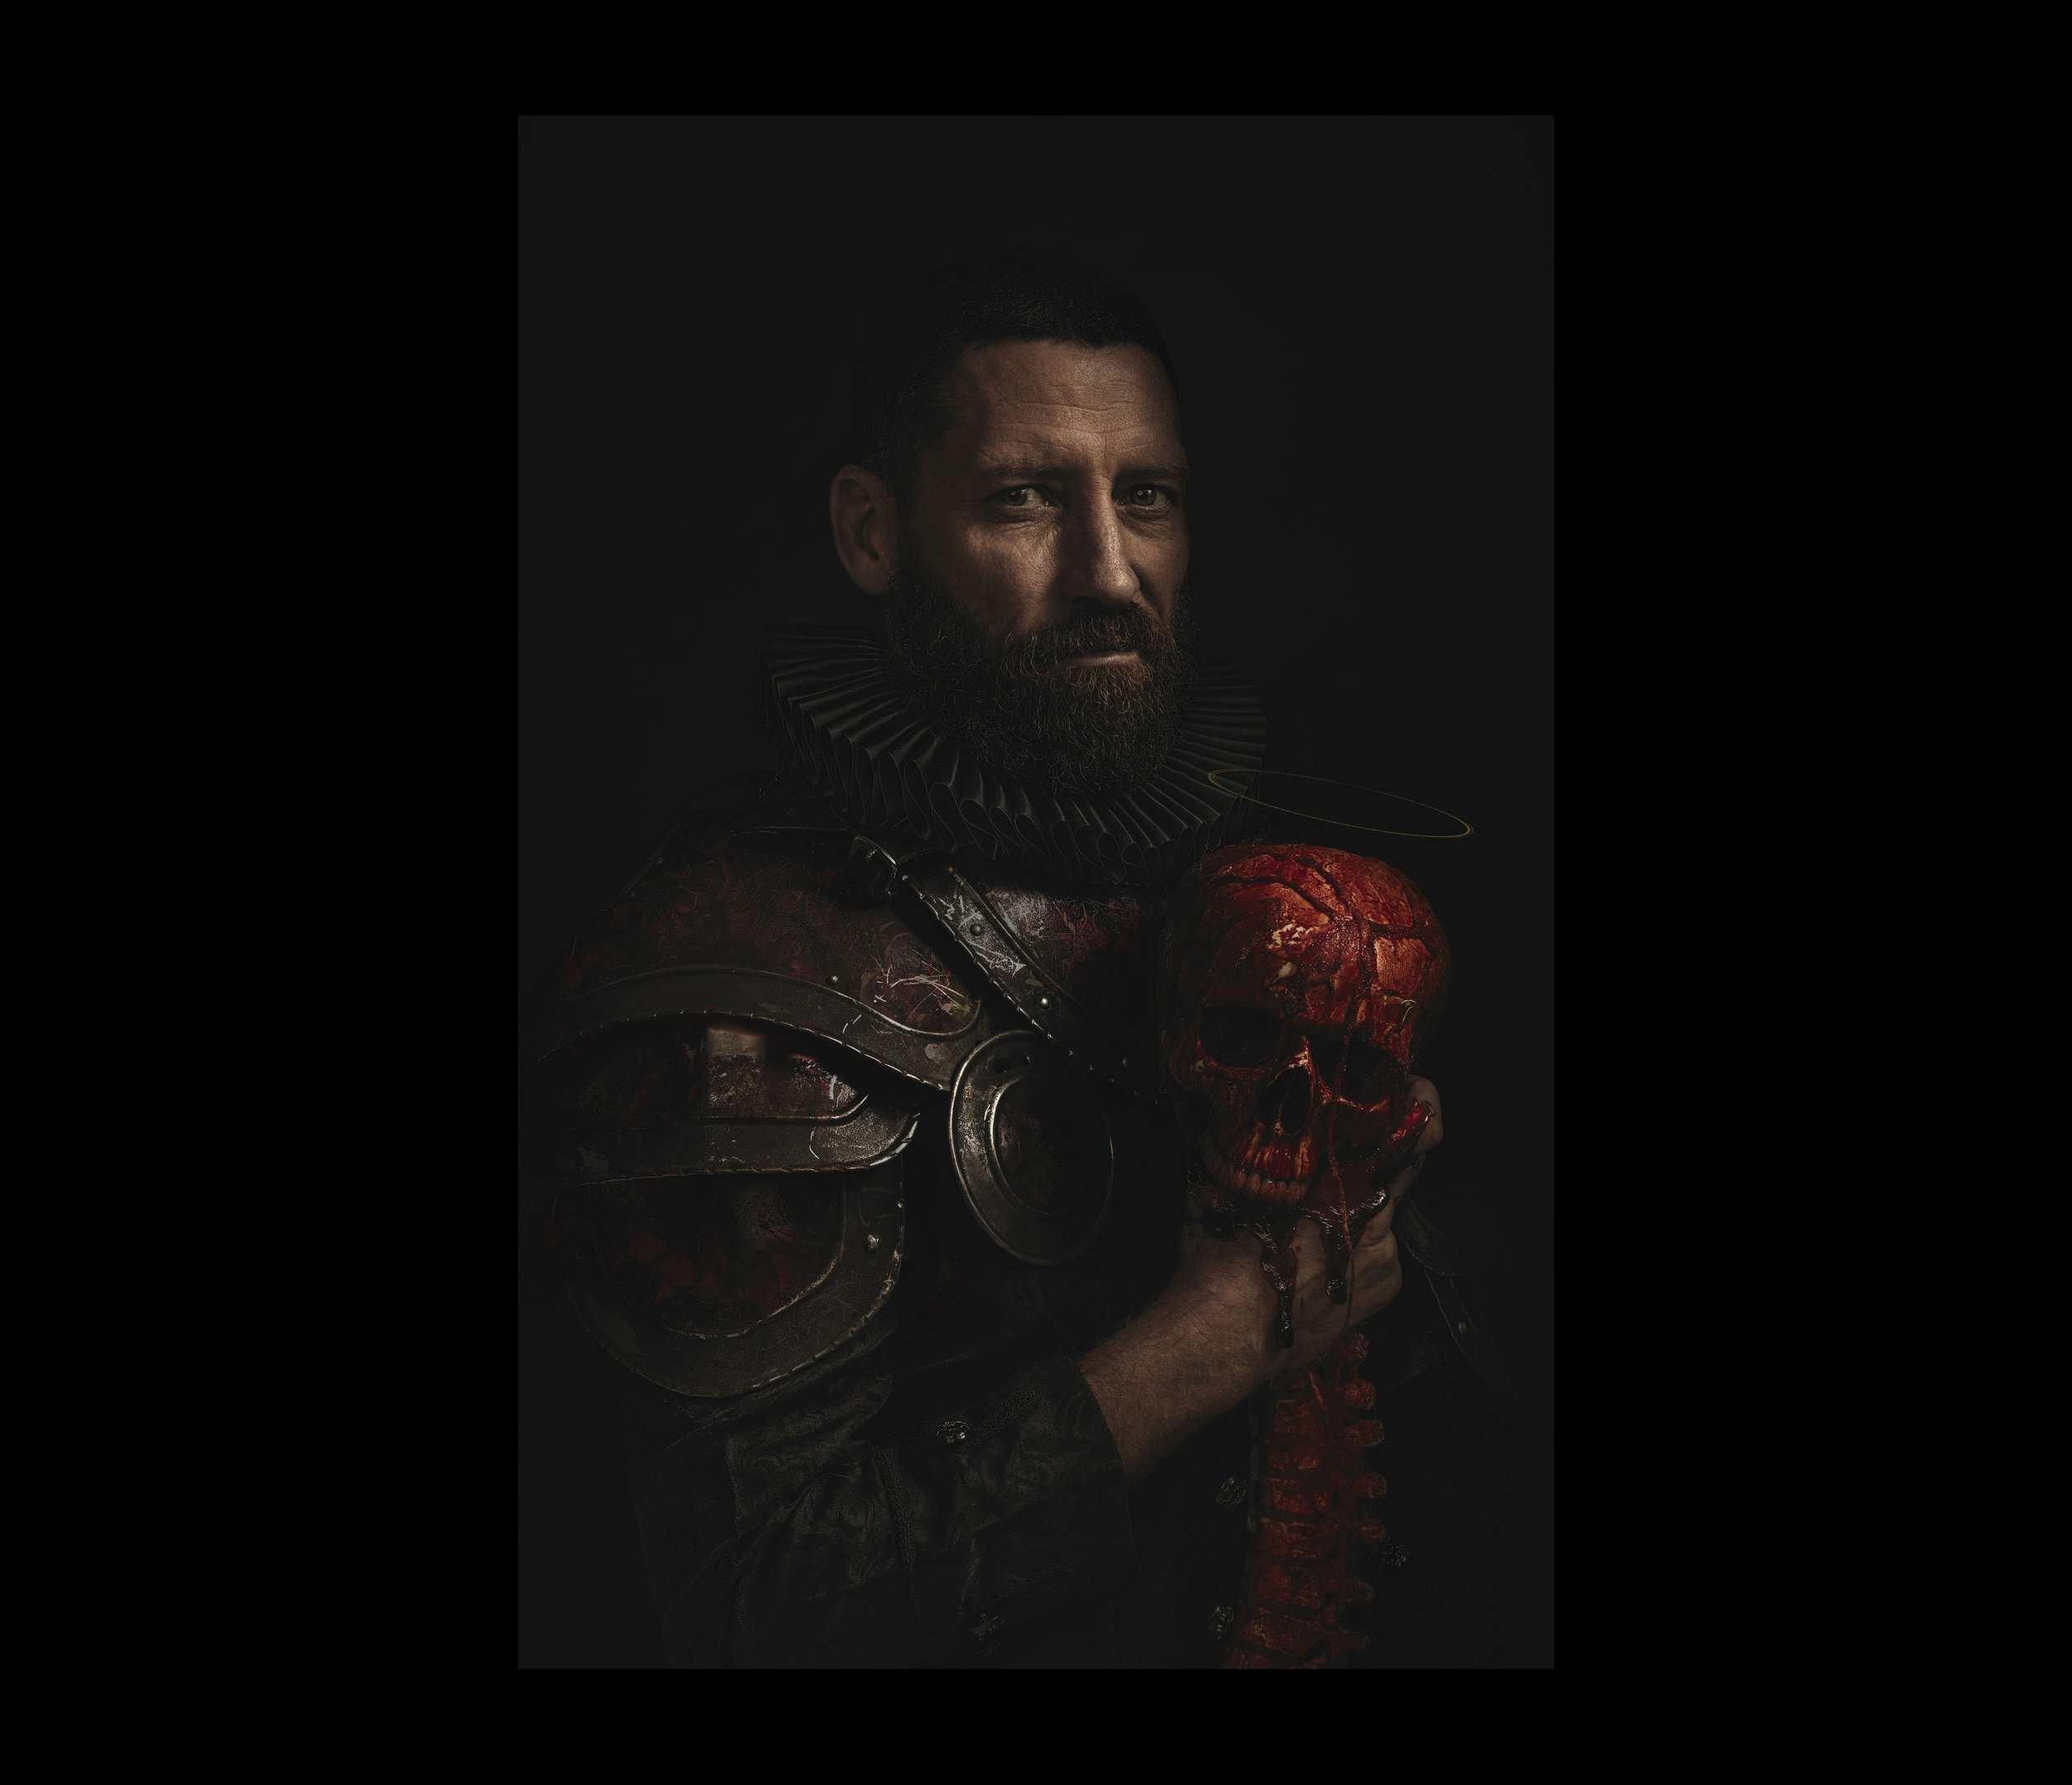 Creative Portrait Photography - The Martyr Maker